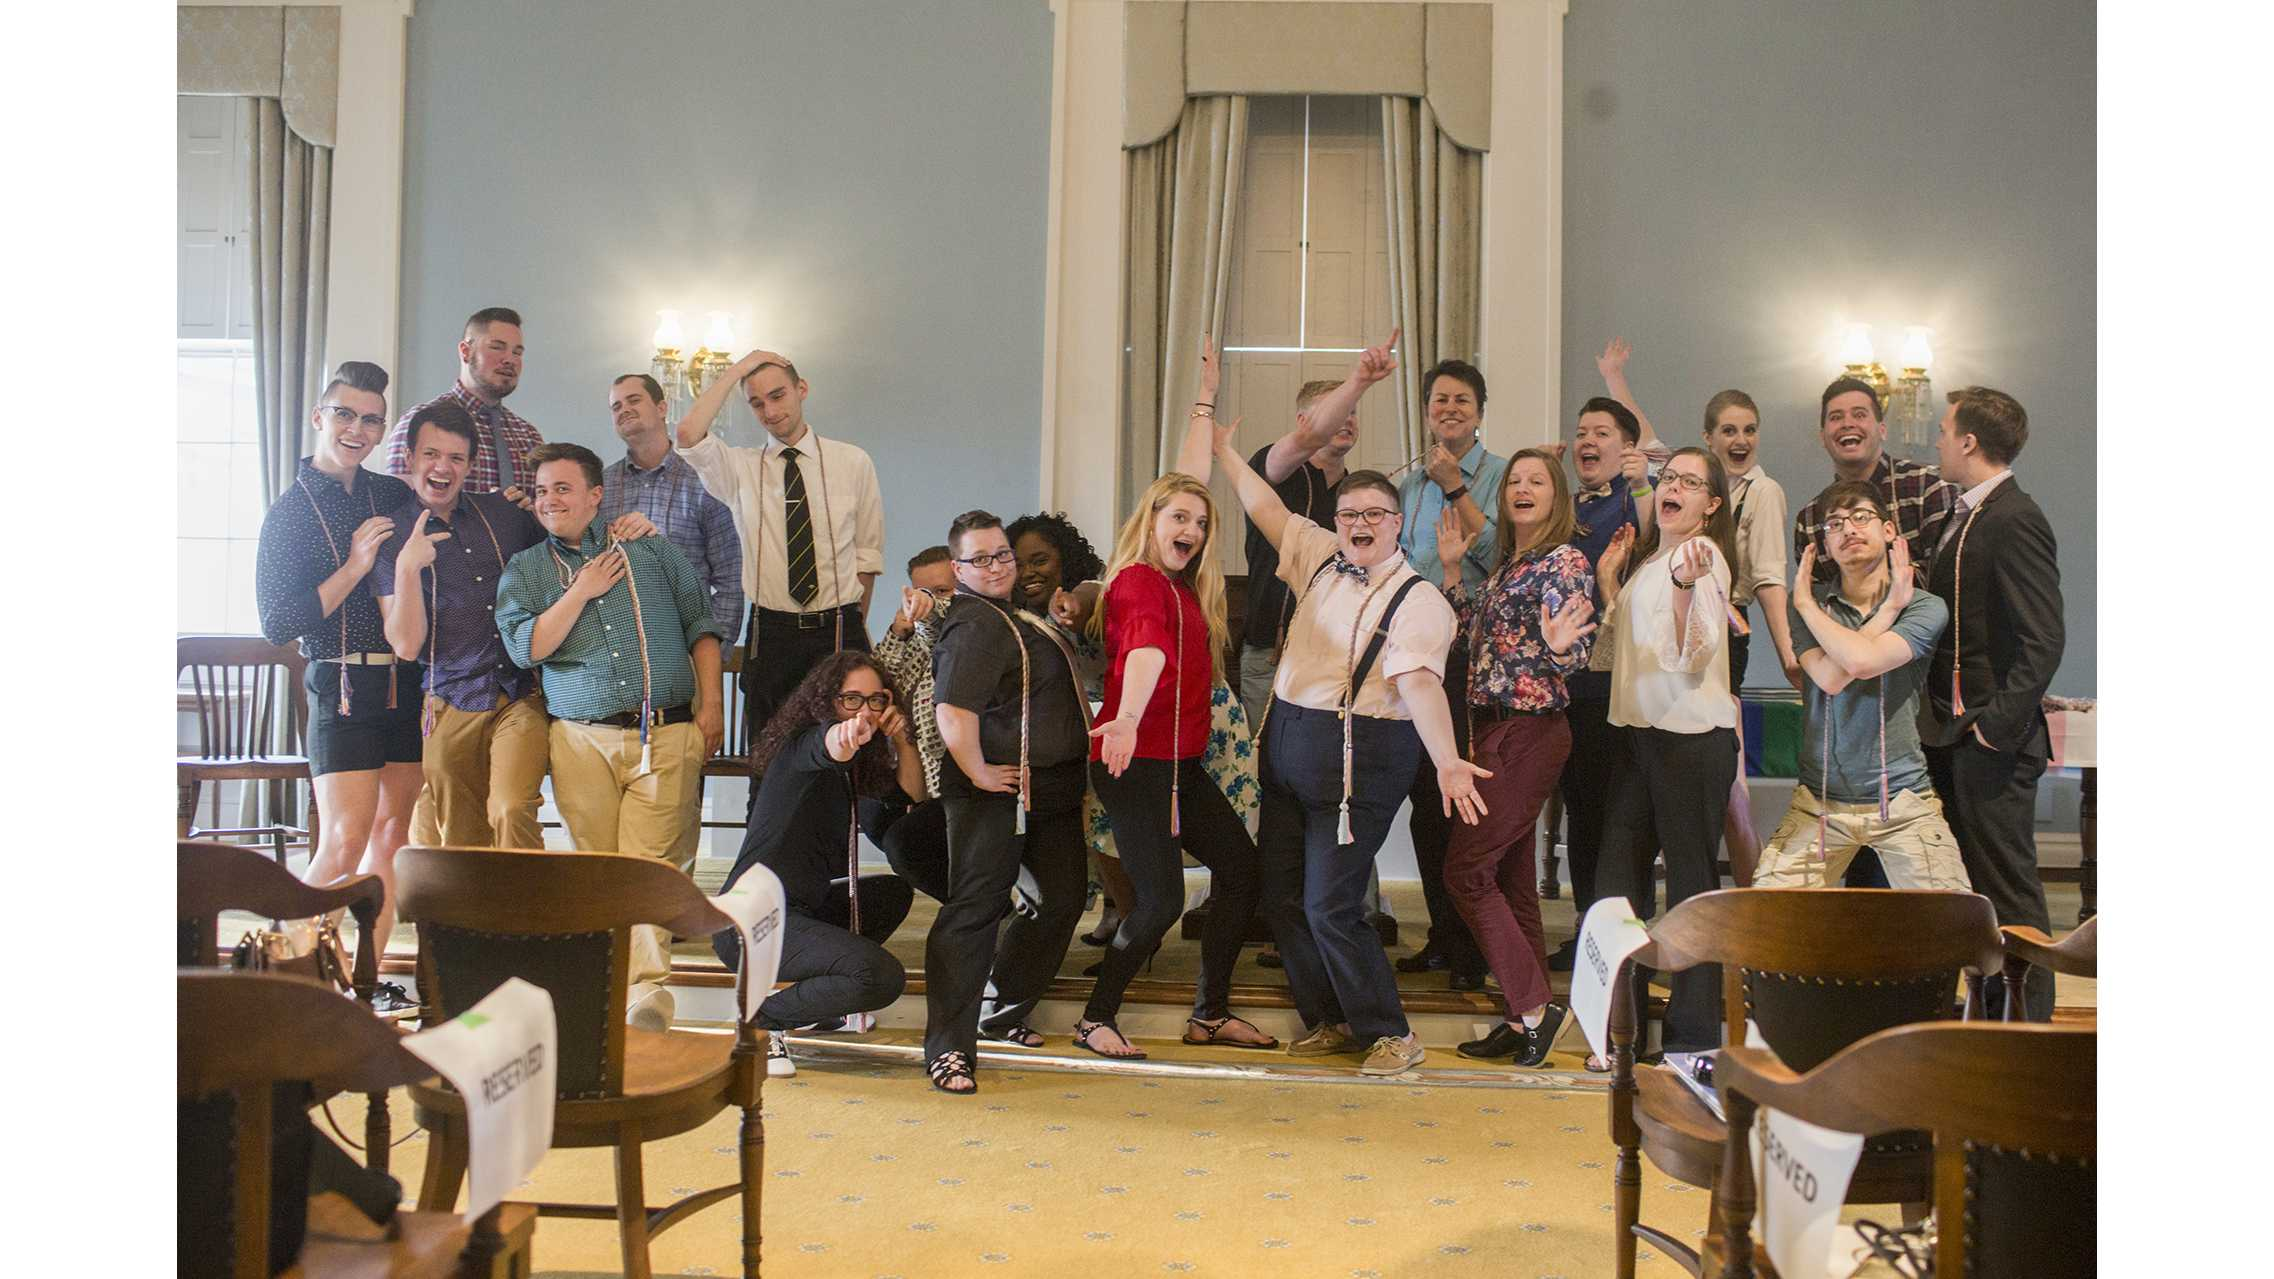 All graduating seniors that participated in the Rainbow Graduation pose after the event on Tue. May 8, 2018 held in the Old Capitol Senate Chamber. The Rainbow Graduation allows LGBTQ students to celebrate their graduation as a group. (Katie Goodale/The Daily Iowan)